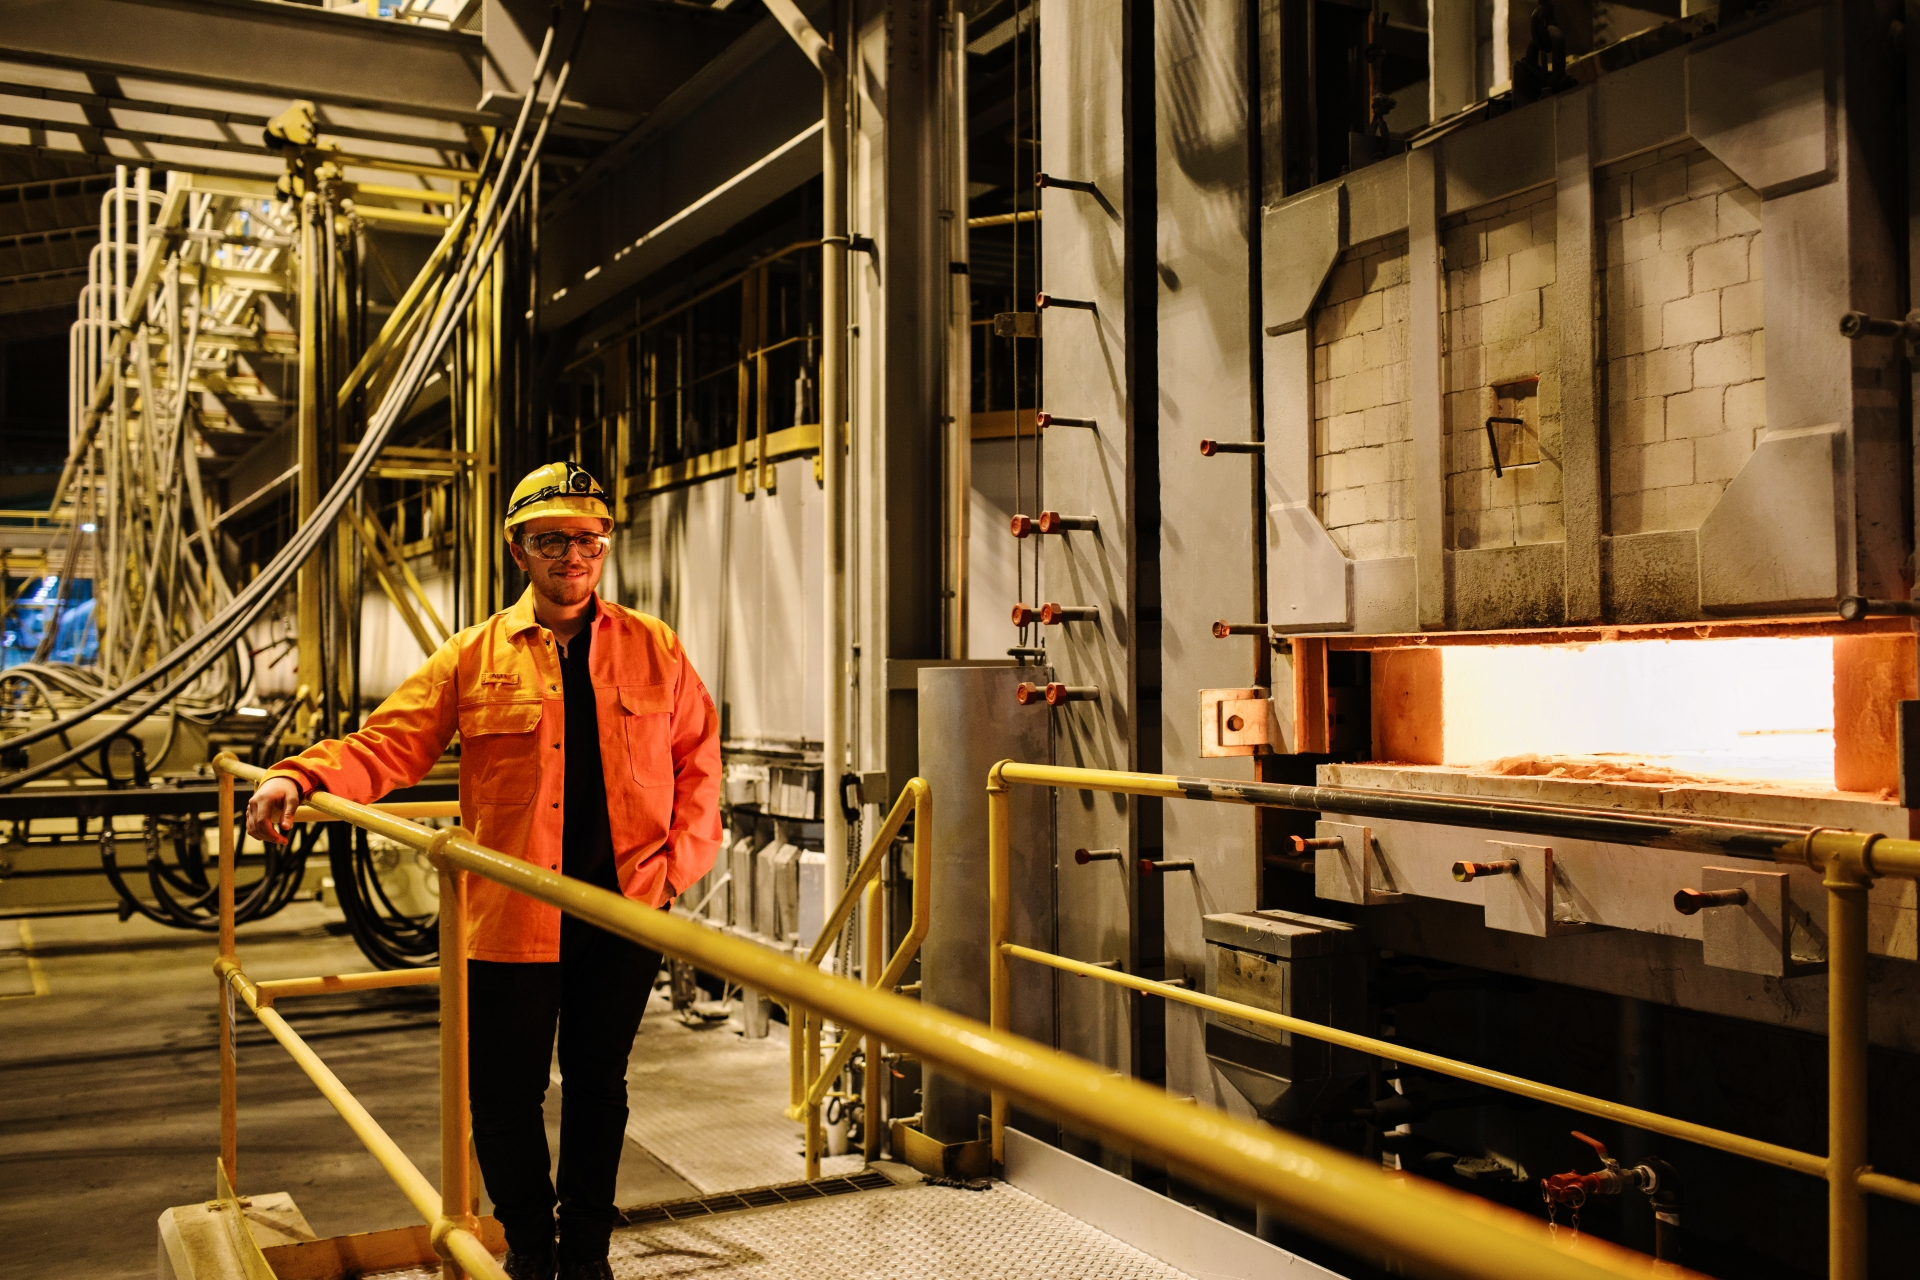 Alex Starling wears protective clothing in a factory